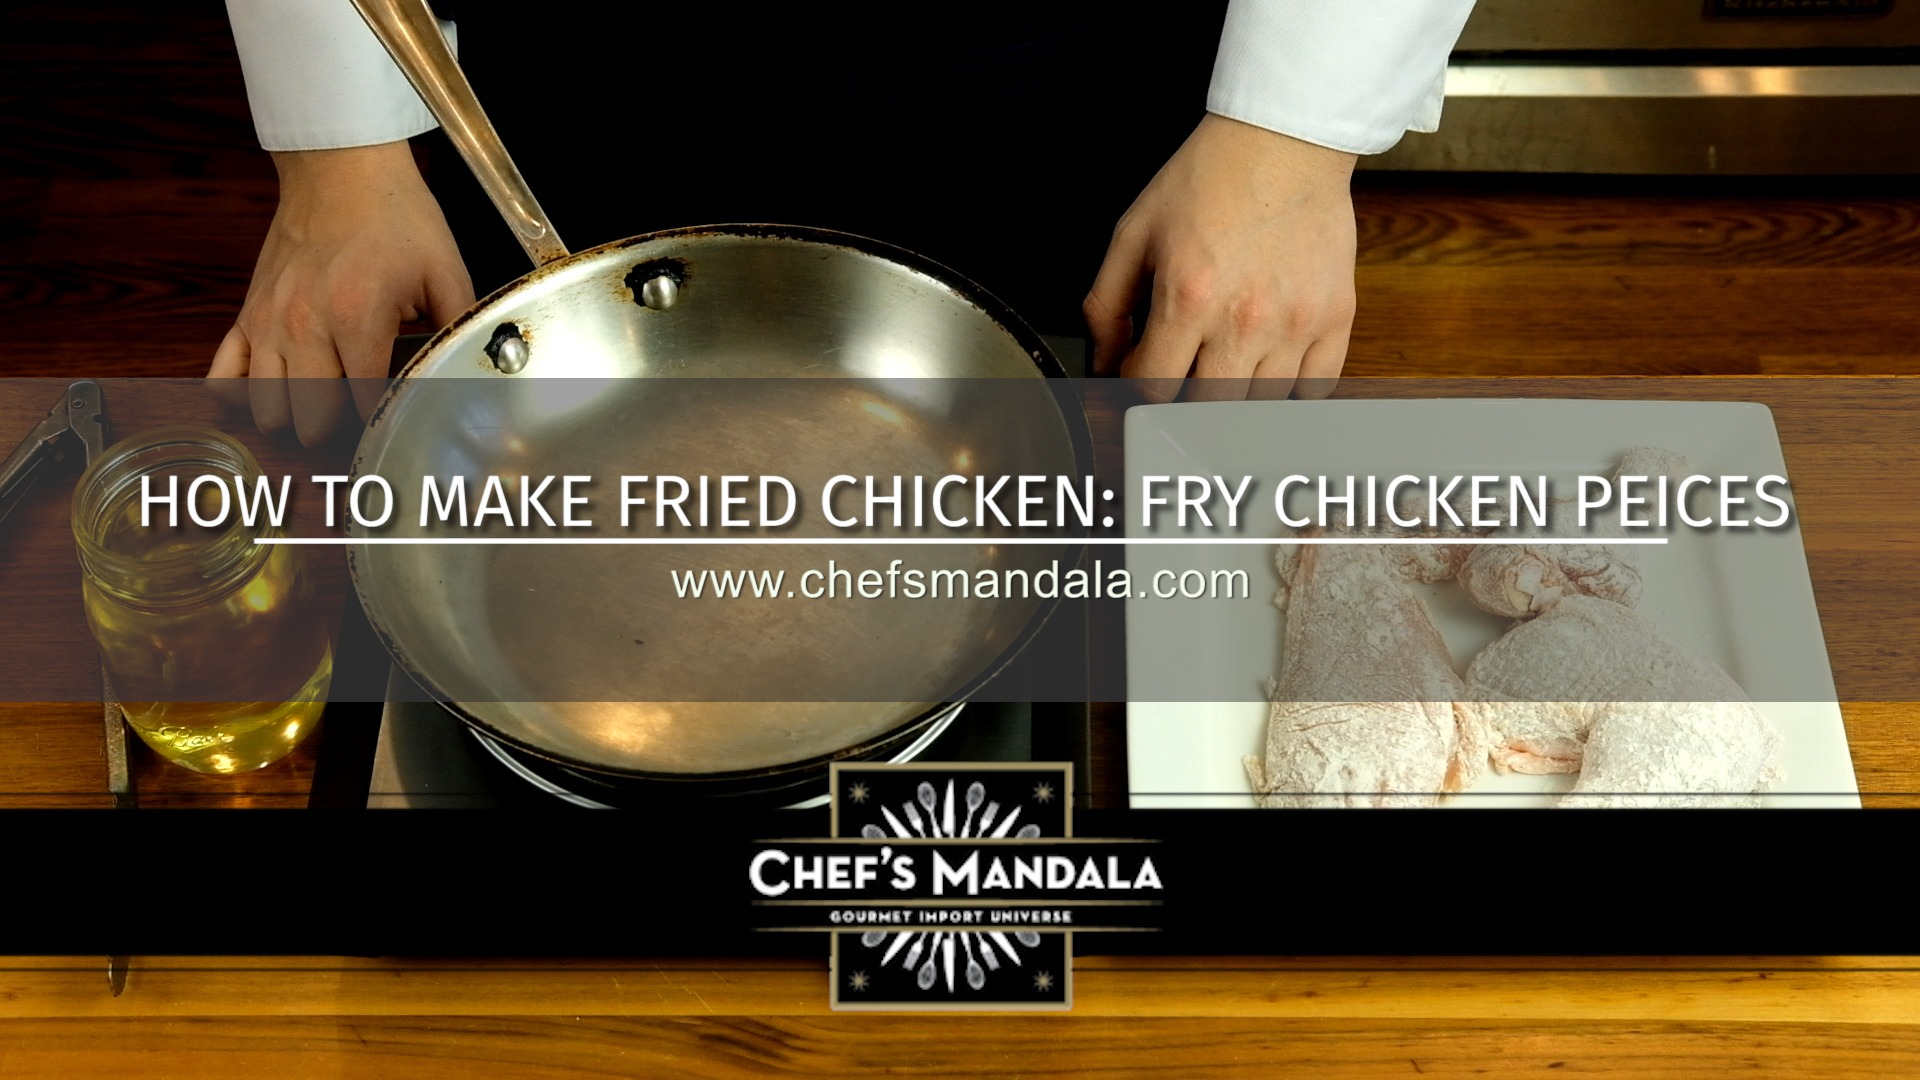 HOW TO FRY CHICKEN PIECES